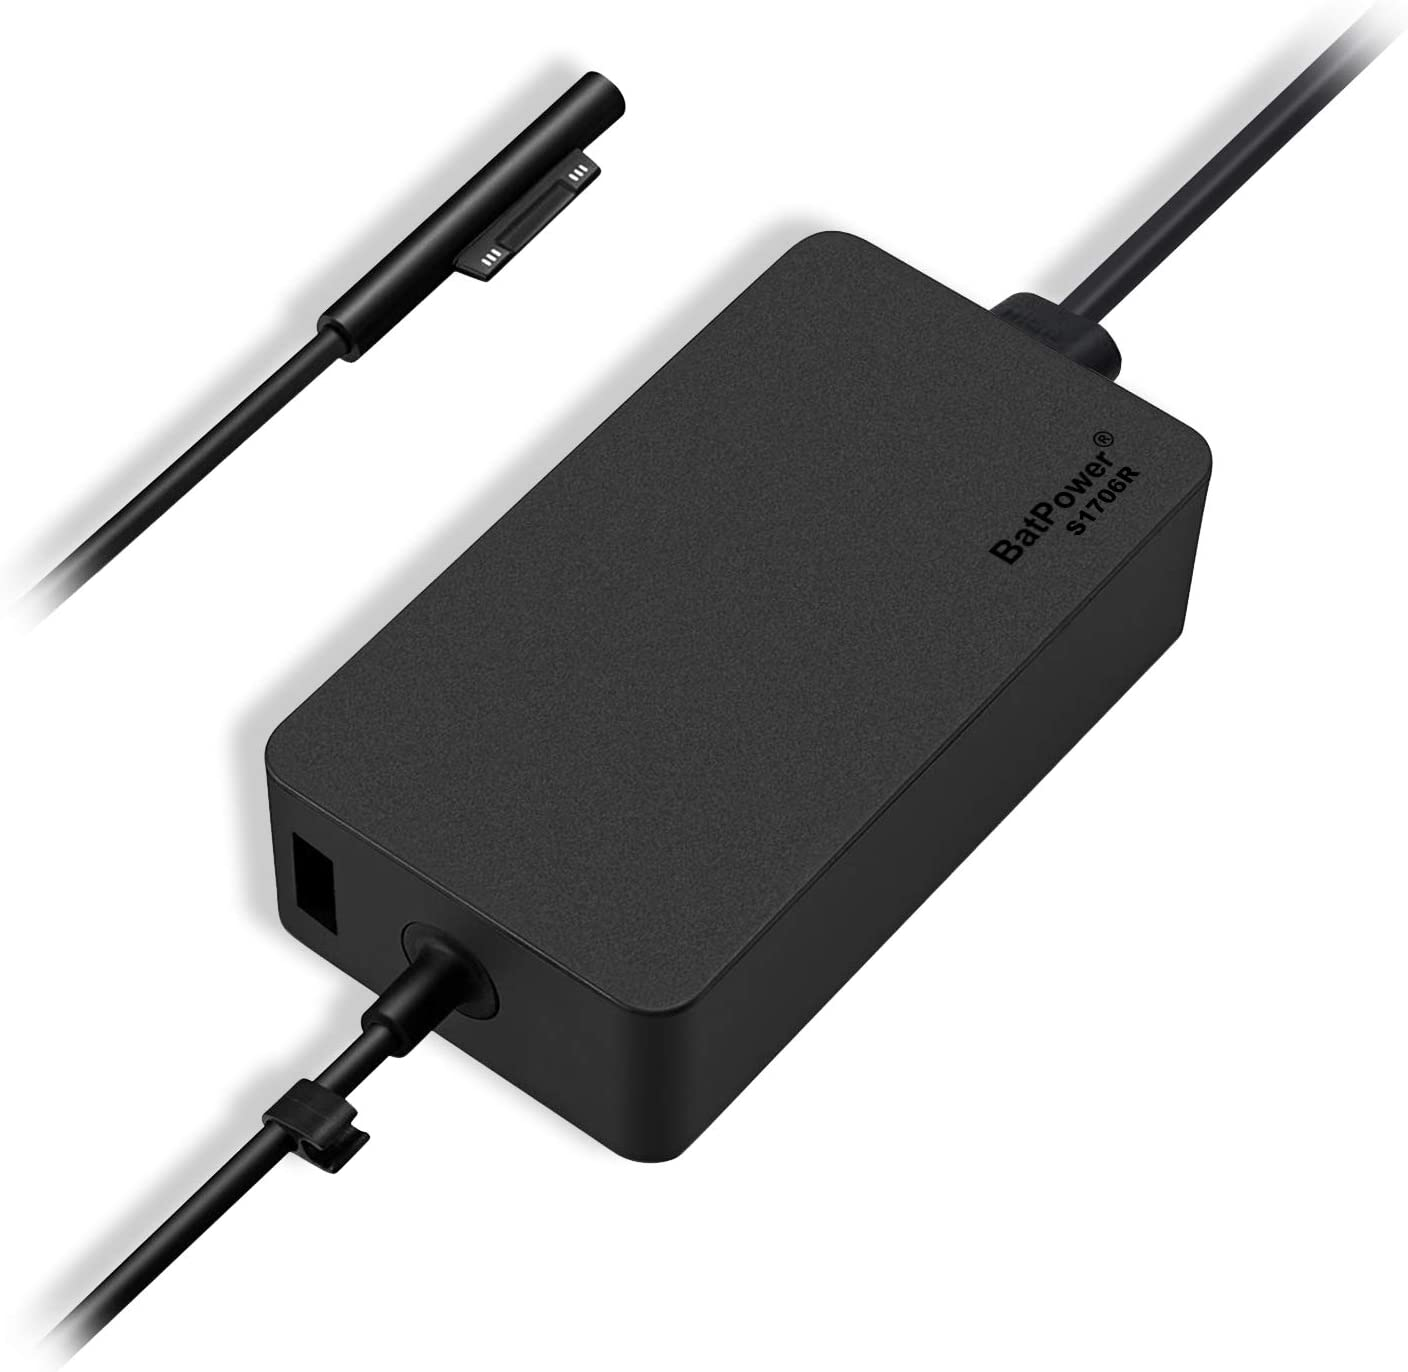 65W Surface Charger, BatPower 65W Power Adapter Surface Laptop, Surface Book, Surface Go and Surfce Pro, for Microsoft Surface Power Supply 65w Ac Adapter 1706 with 5V USB and 6.6ft Surface Power Cord